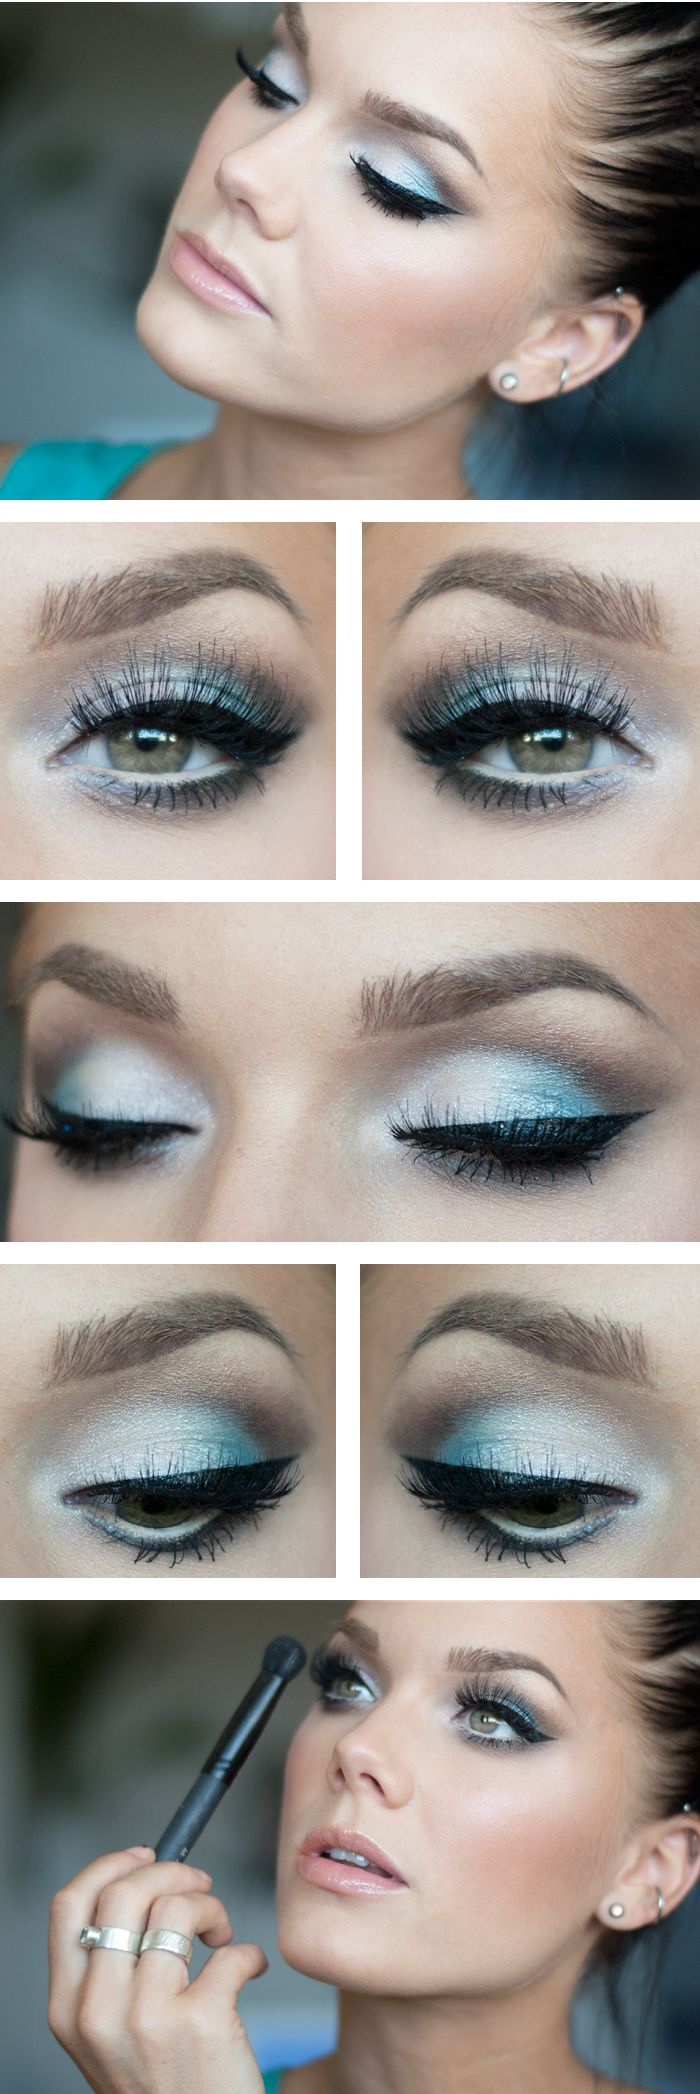 """Today's Look : """" A Touch of Turquoise -Linda Hallberg ( whites, taupes and turquoise... a lovely look on brown/hazel eyes and I'm sure blue or green as well....paired nicely with the barest hint of pink on the lips and cheeks)08/04/13"""